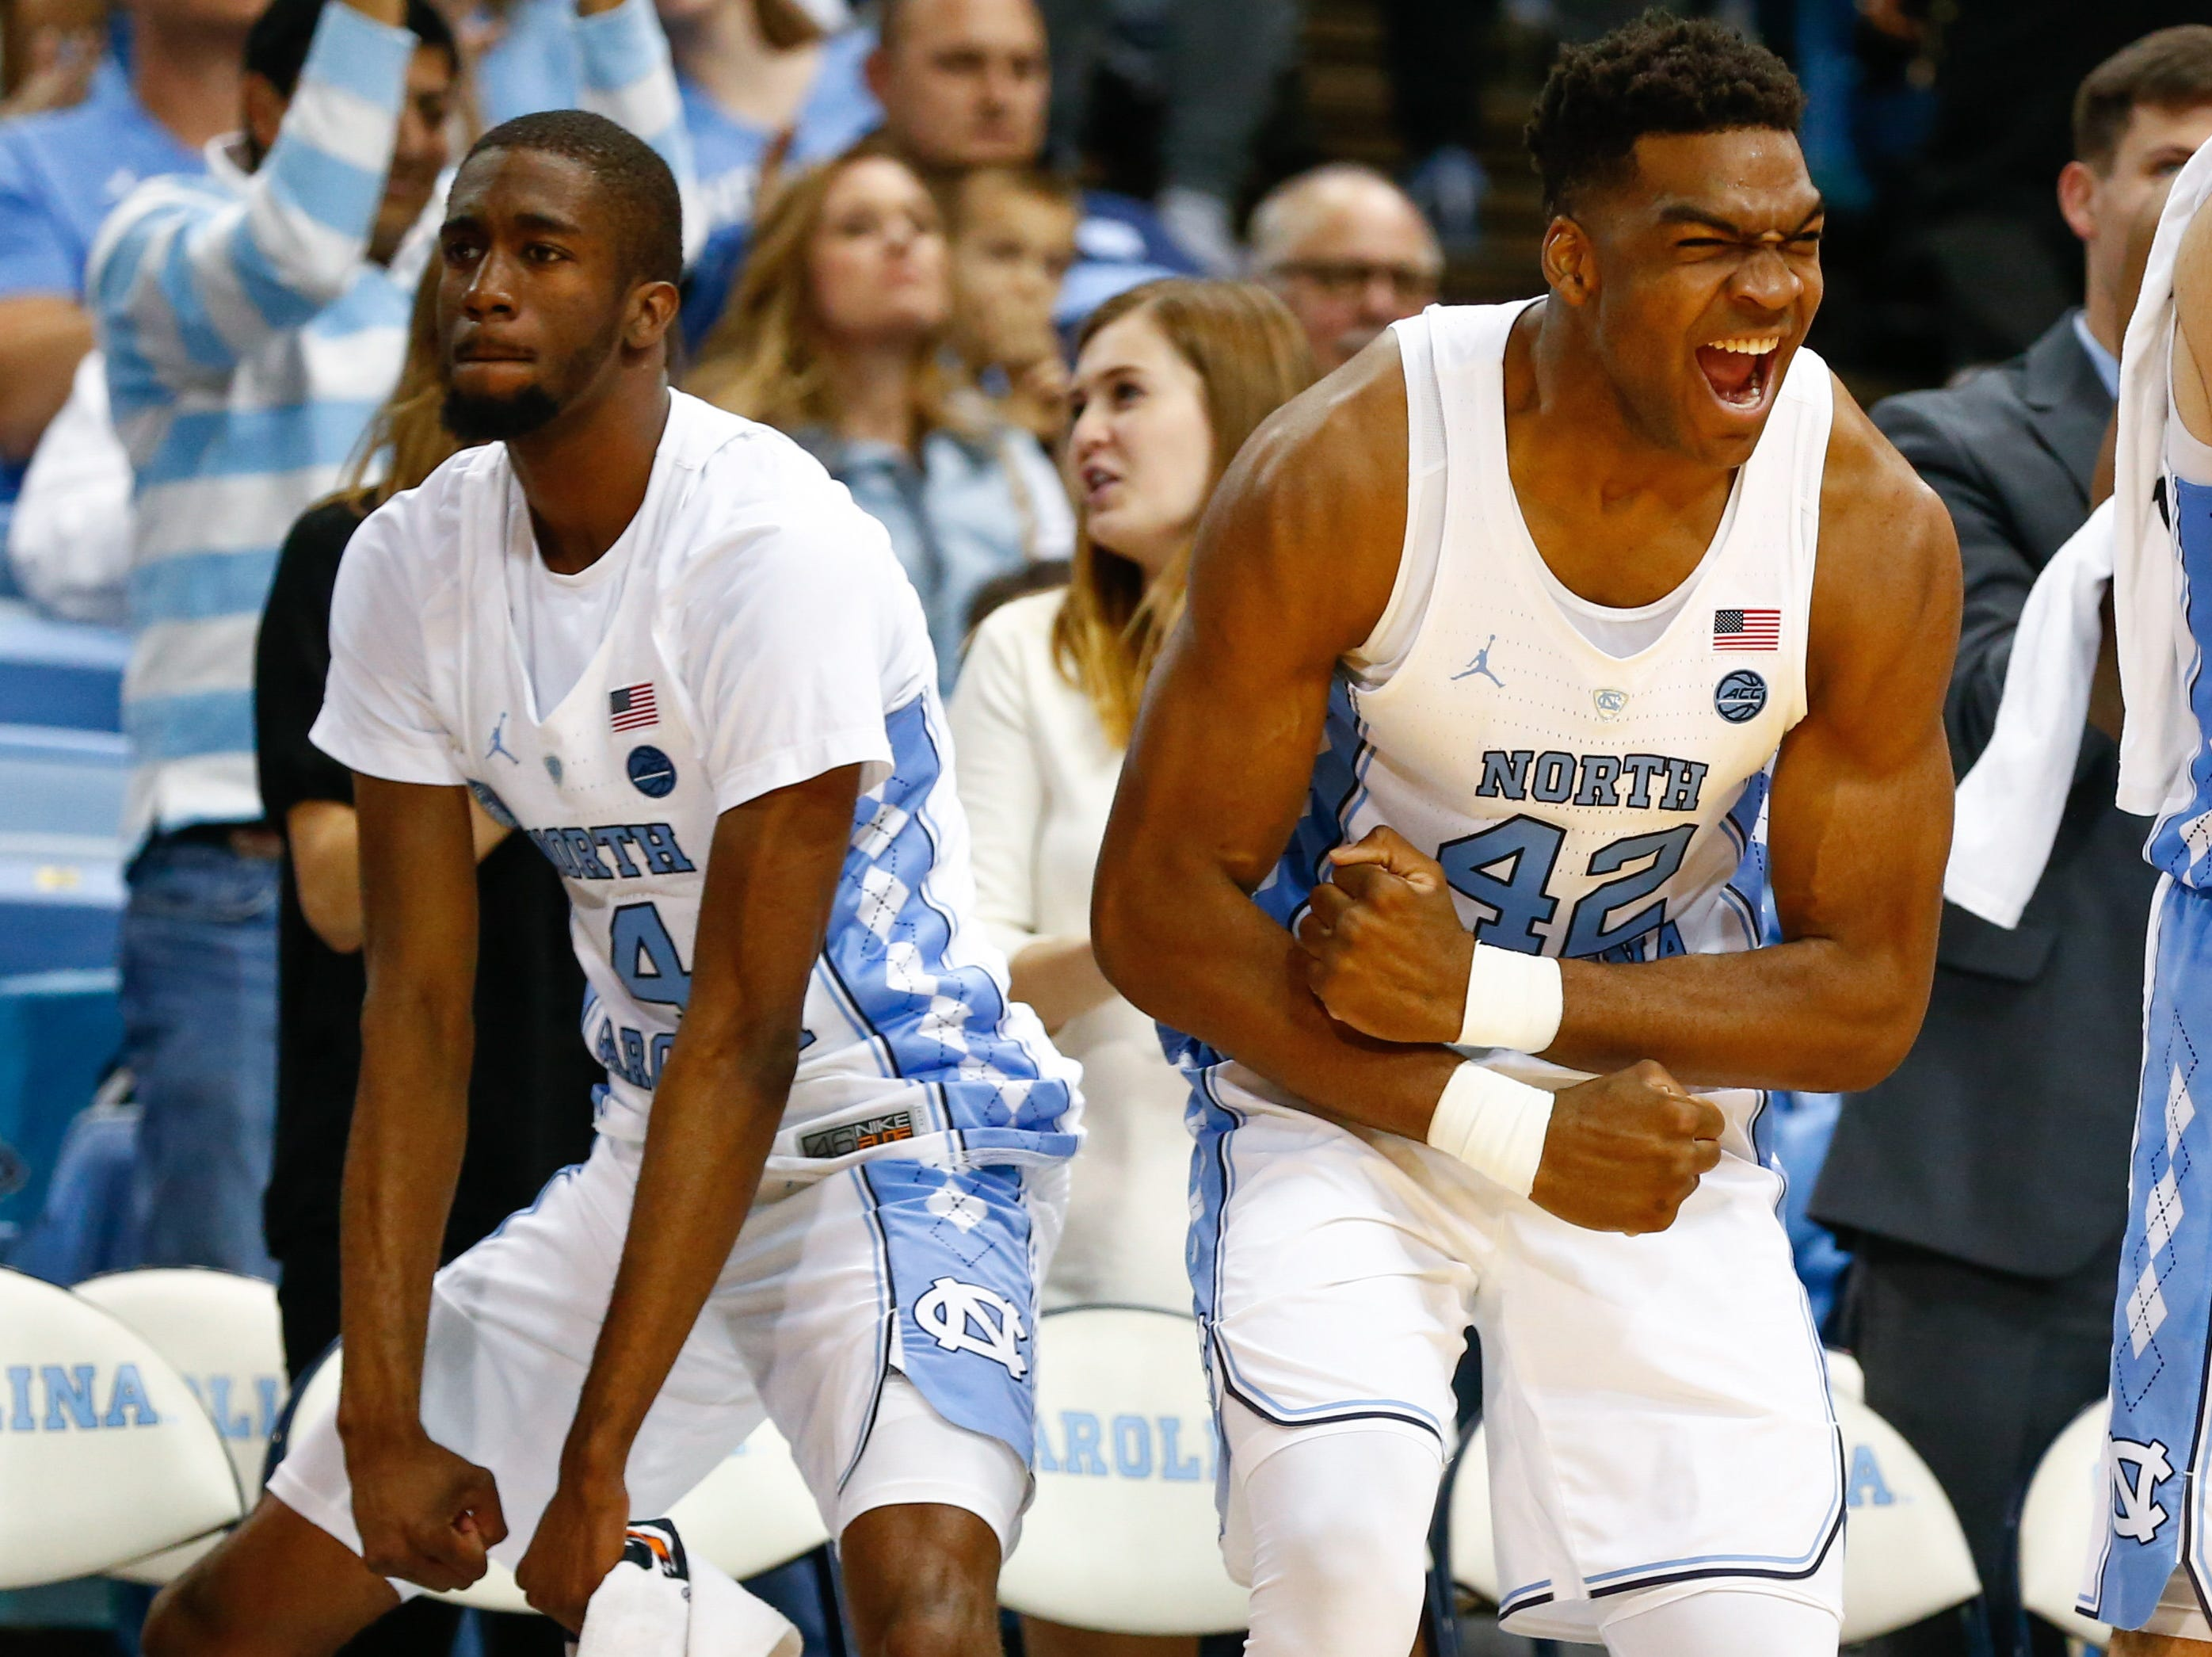 Dec 6, 2017; Chapel Hill, NC, USA; North Carolina Tar Heels forward Brandon Huffman (42) and guard Brandon Robinson (4) react to a basket in the second half against the Western Carolina Catamounts at Dean E. Smith Center. Mandatory Credit: Jeremy Brevard-USA TODAY Sports